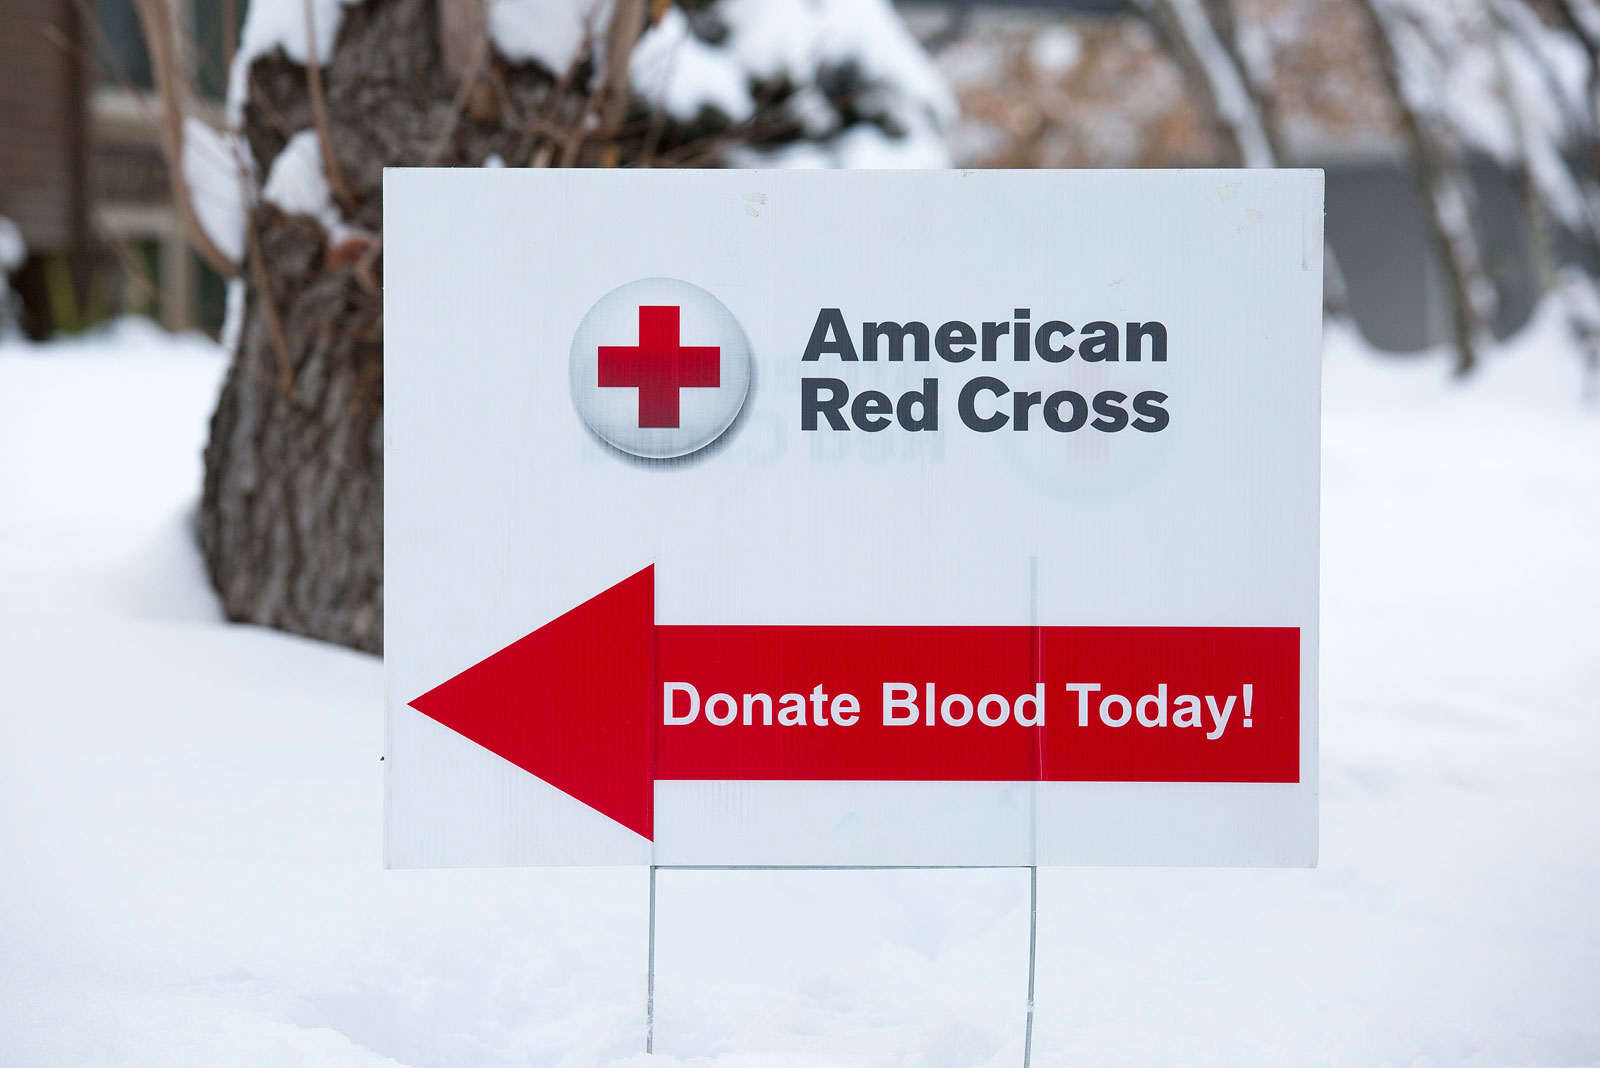 American Red Cross donate blood today sign